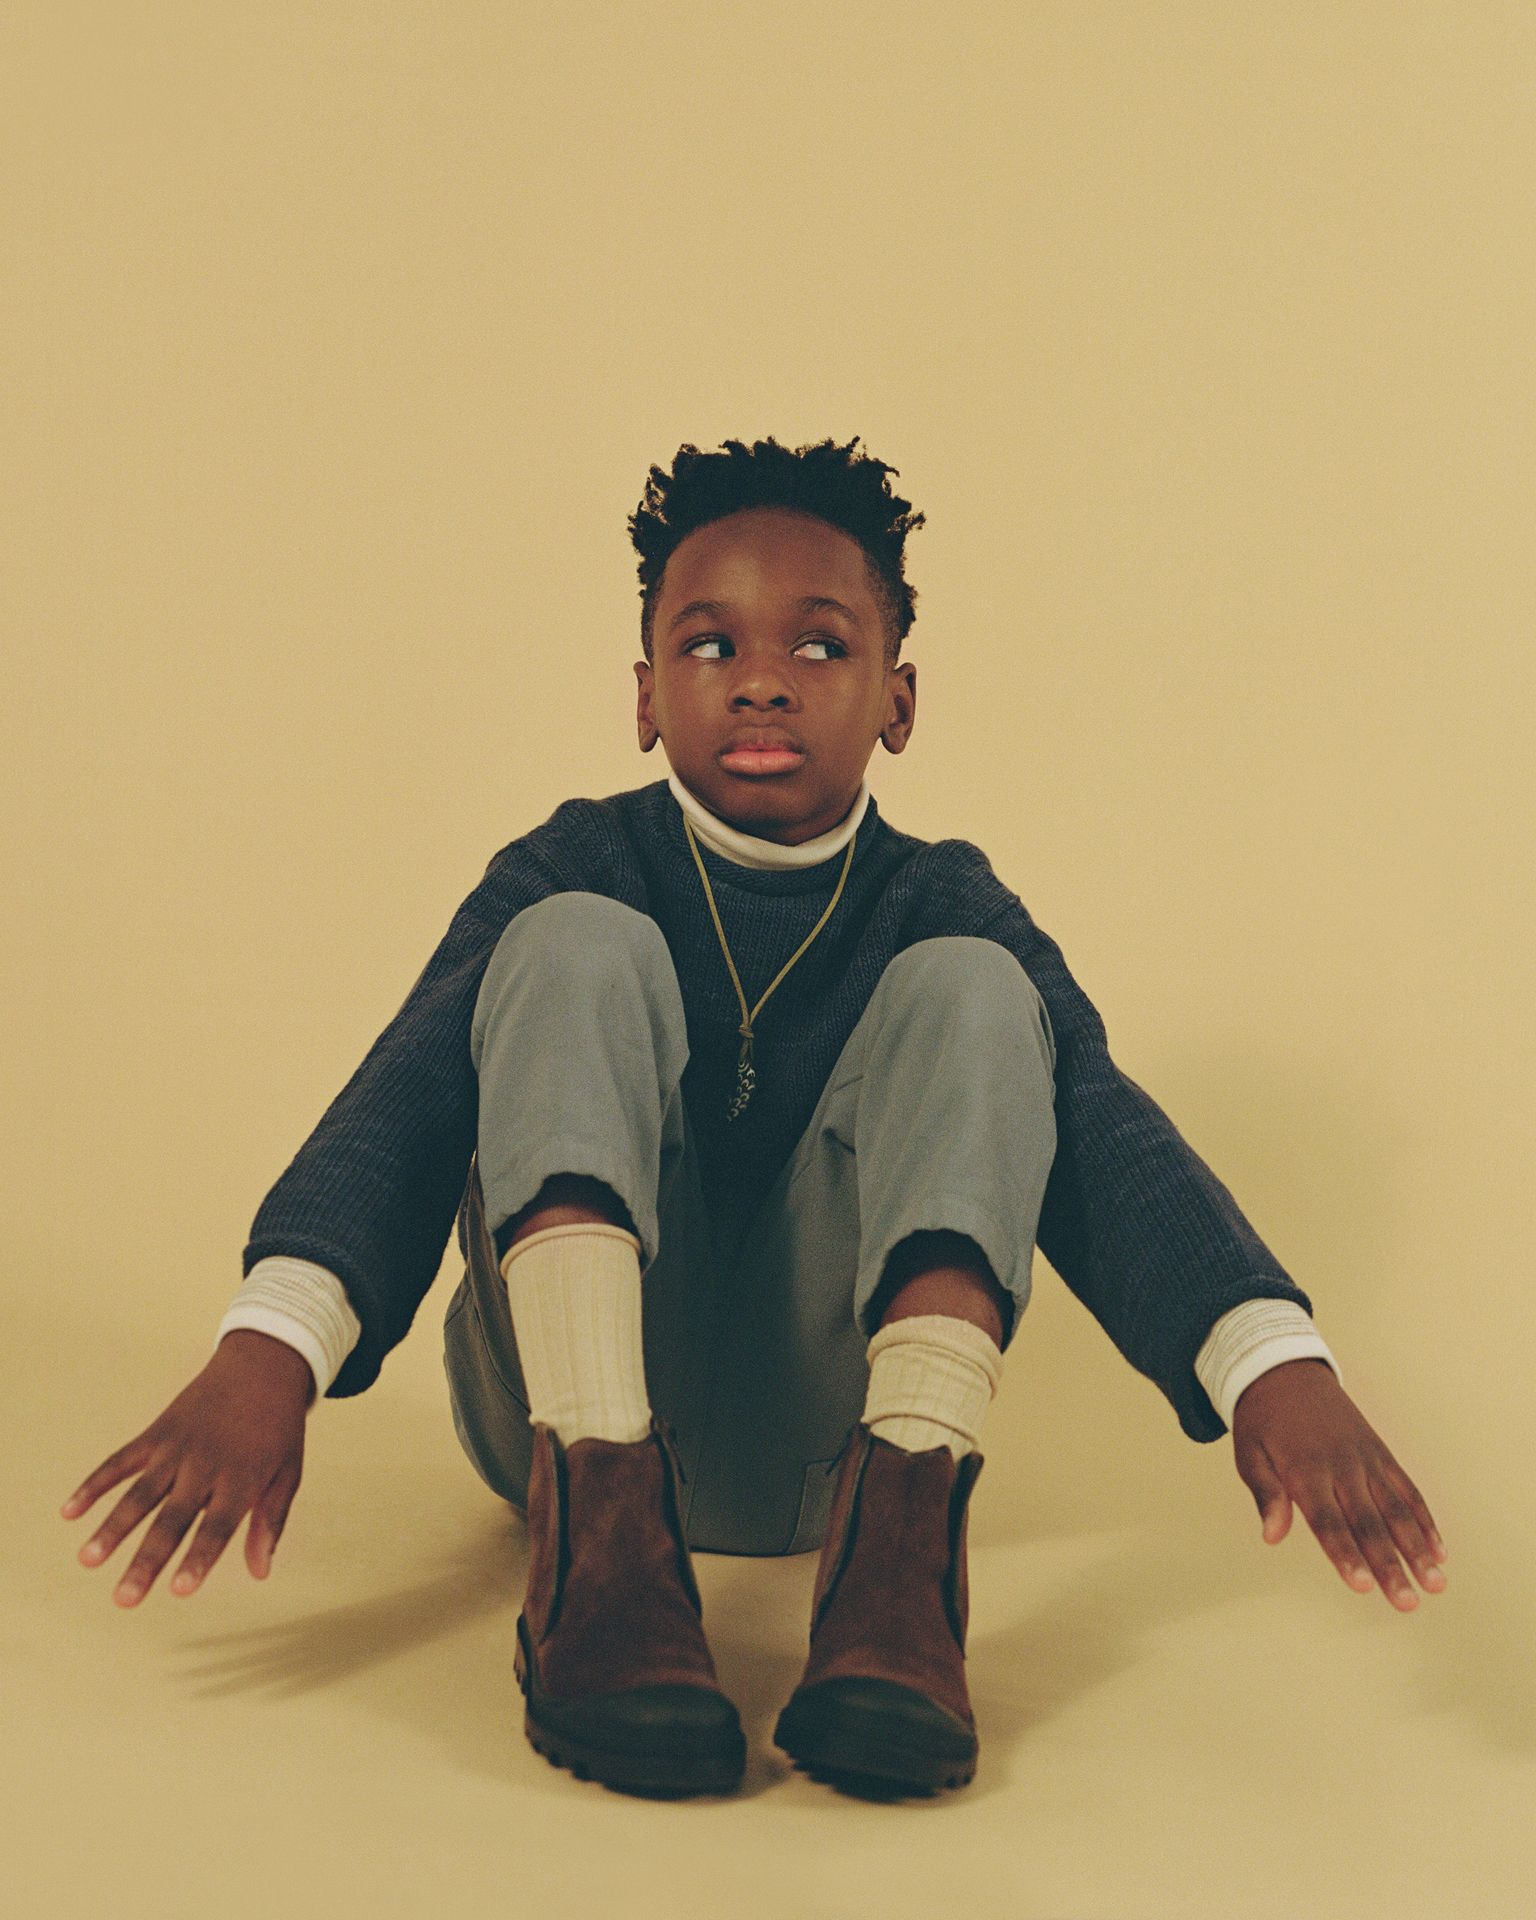 Young black kid looking aside sitting on a beige yellow background with his hands forward in a funny pause.